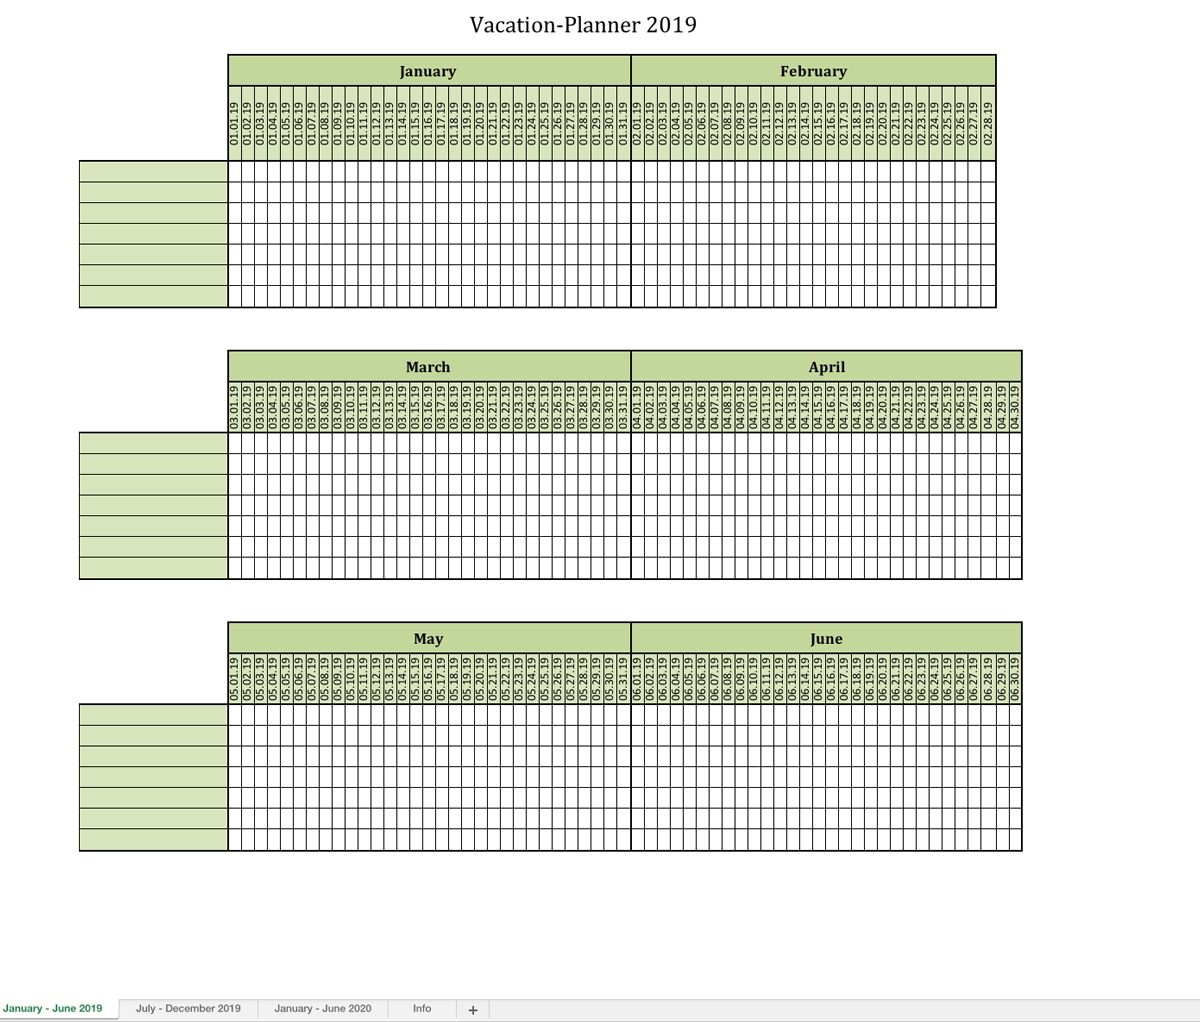 Vacation-Planner 2019-Vacation Planner Template 2020